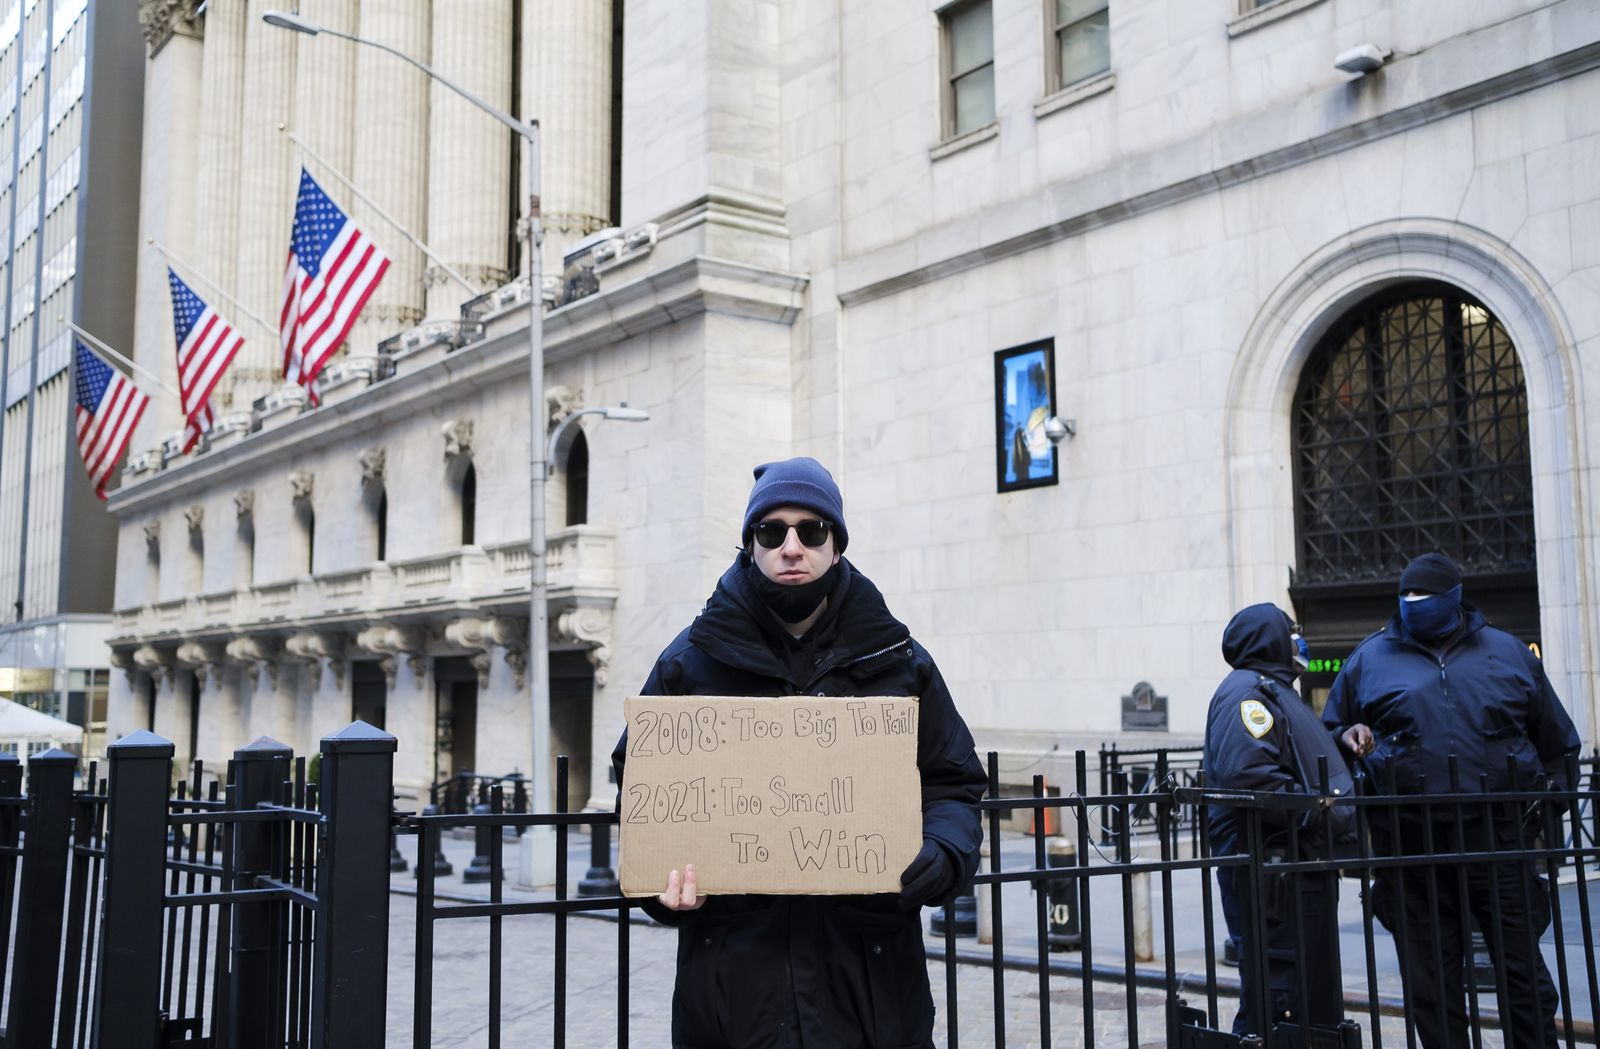 Protest at New York Stock Exchange, USA - 28 Jan 2021